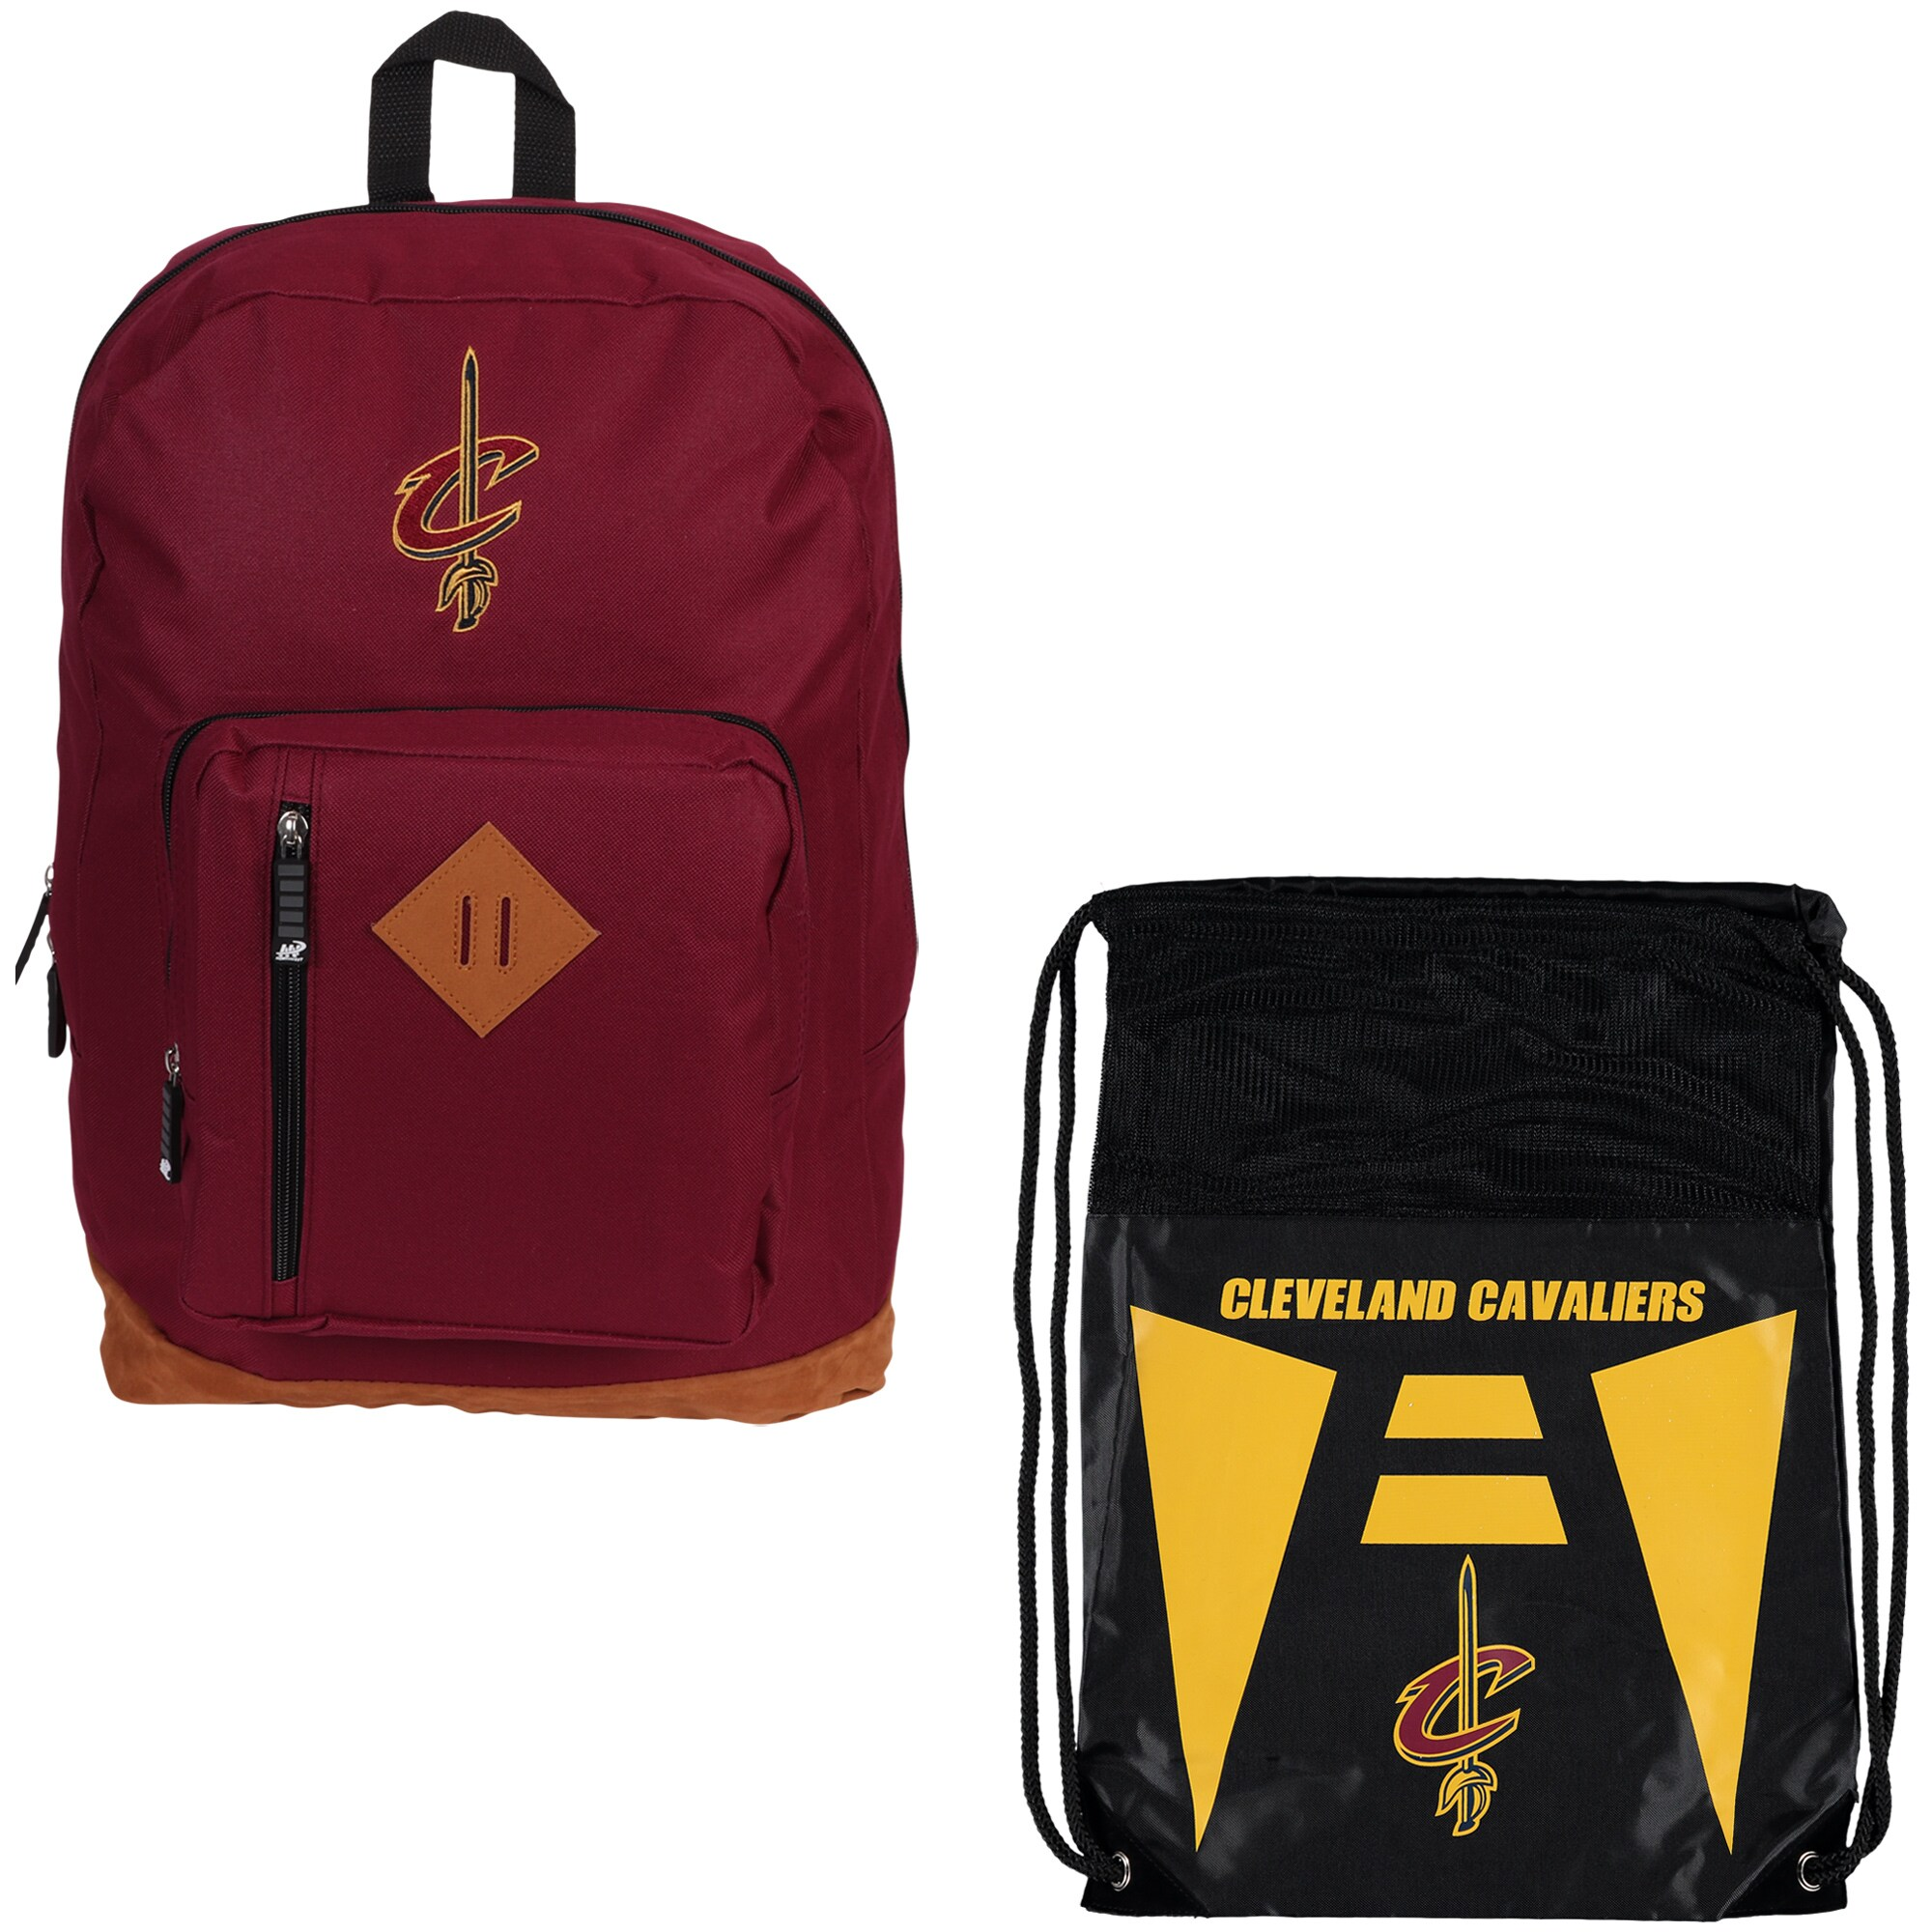 Cleveland Cavaliers The Northwest Company Double Down Backpack Set